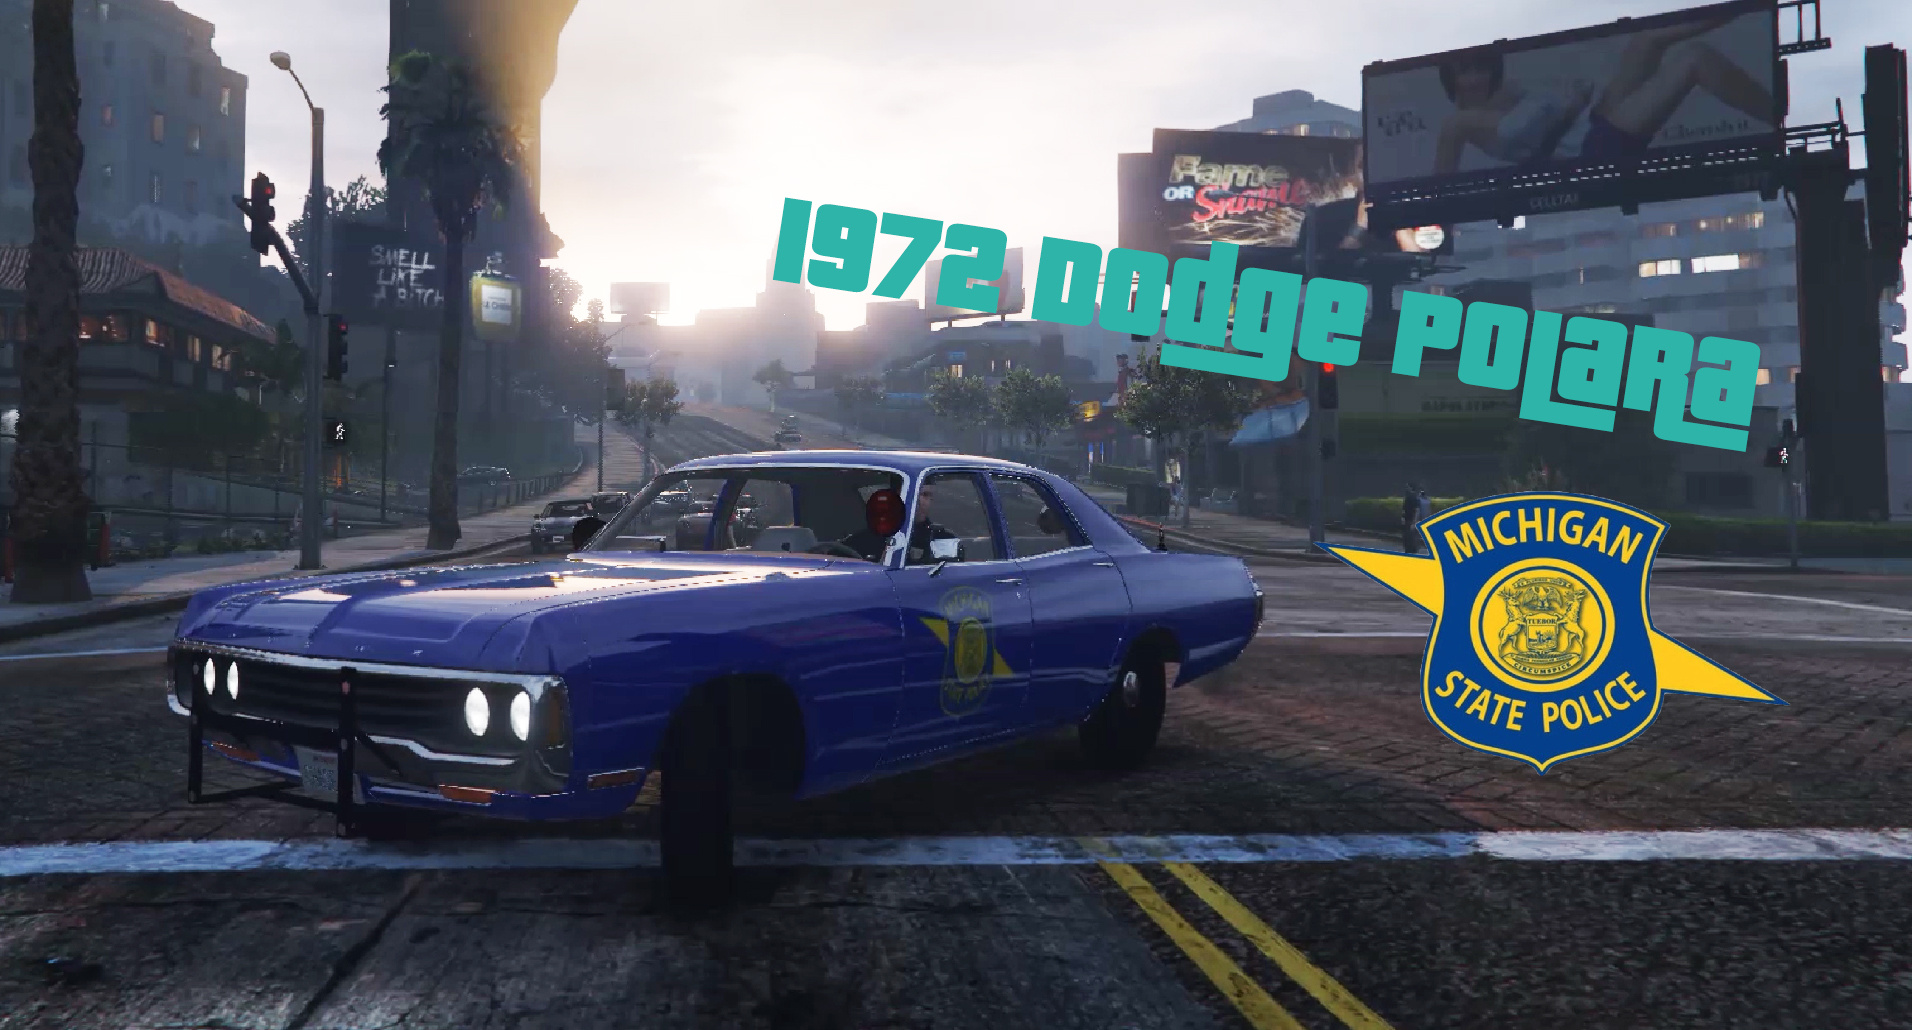 1972 Dodge Polara (Michigan State Police) (Replace) - GTA5